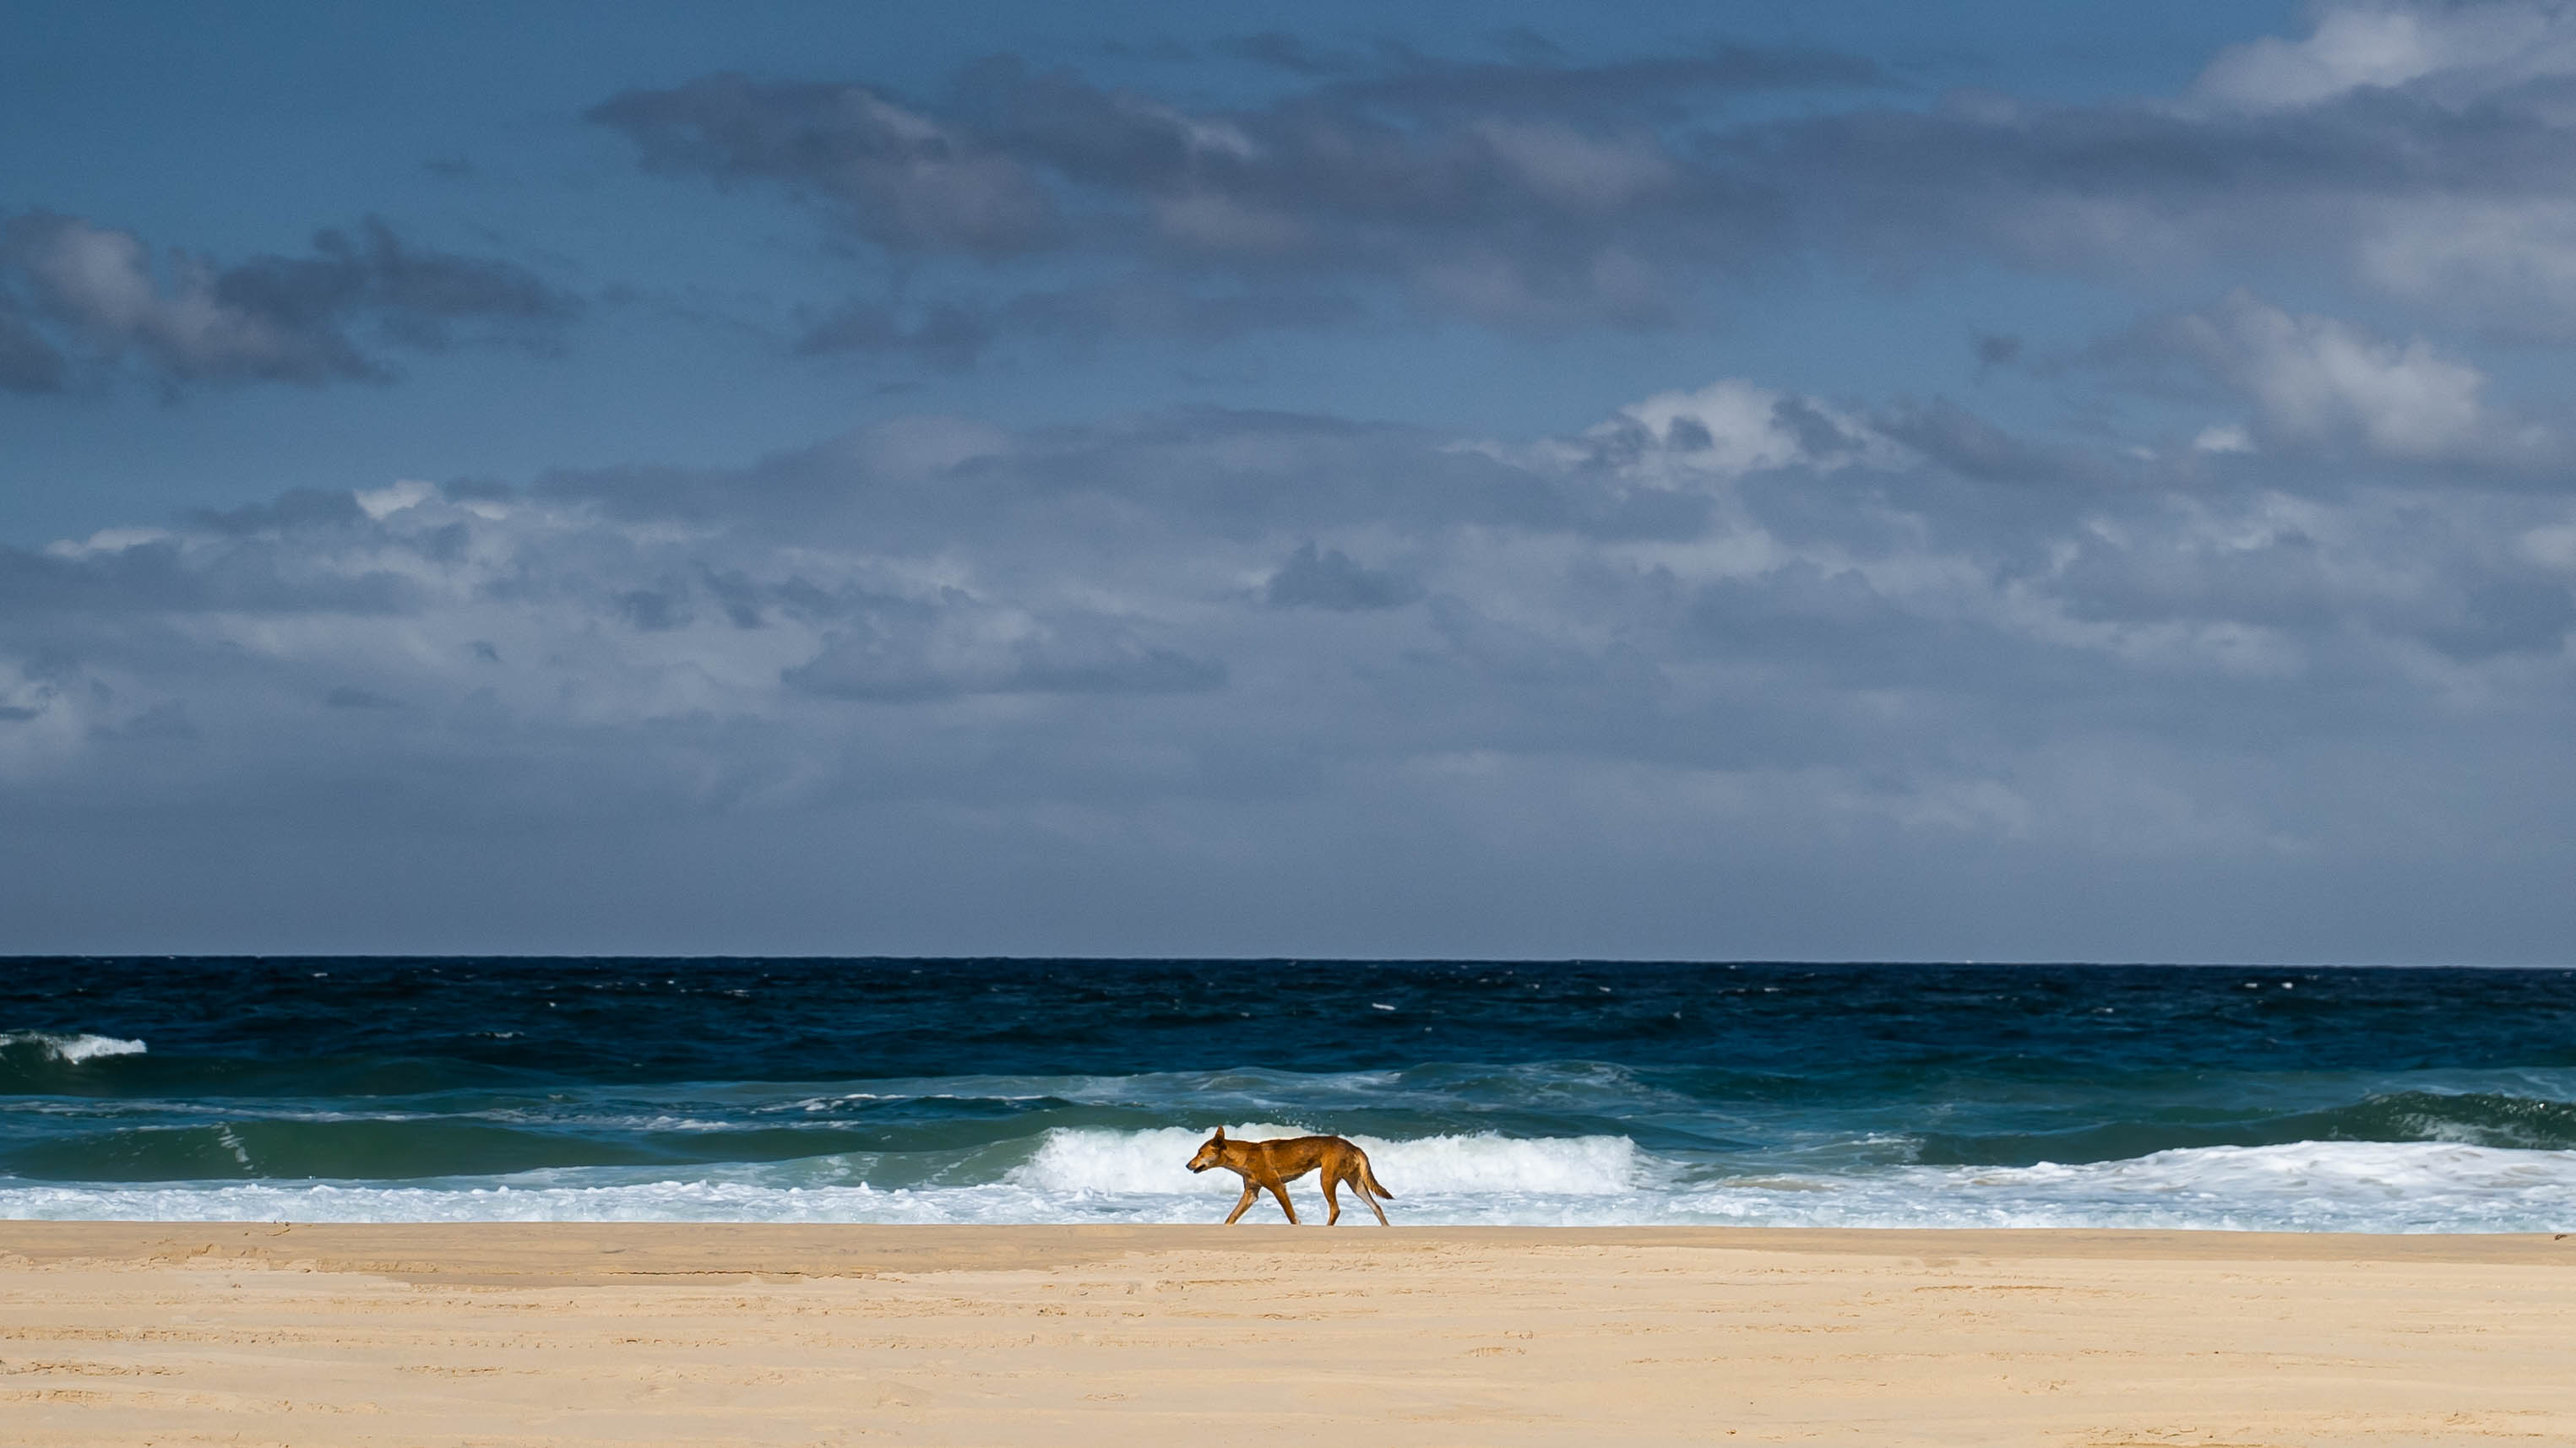 Dingo in the distance